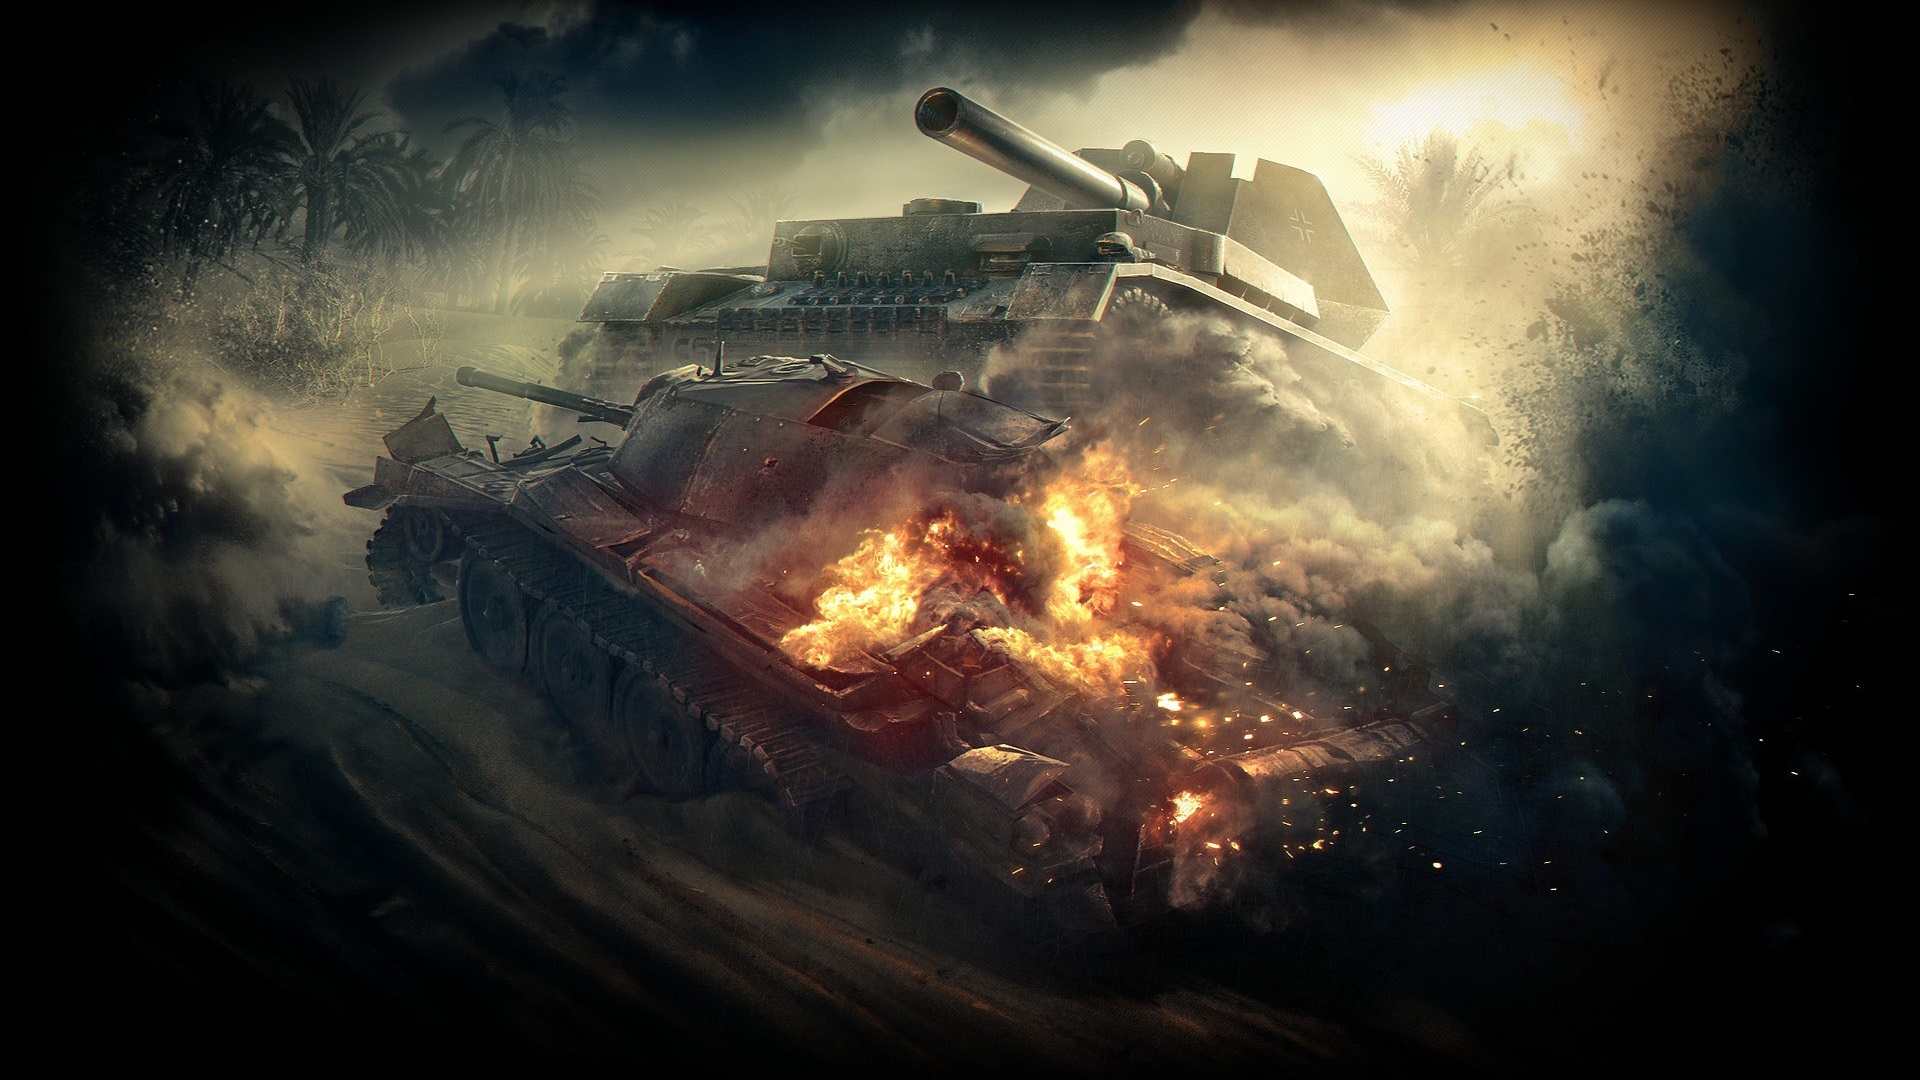 Download Wallpaper 1920x1080 World of Tanks, destroy Full ...